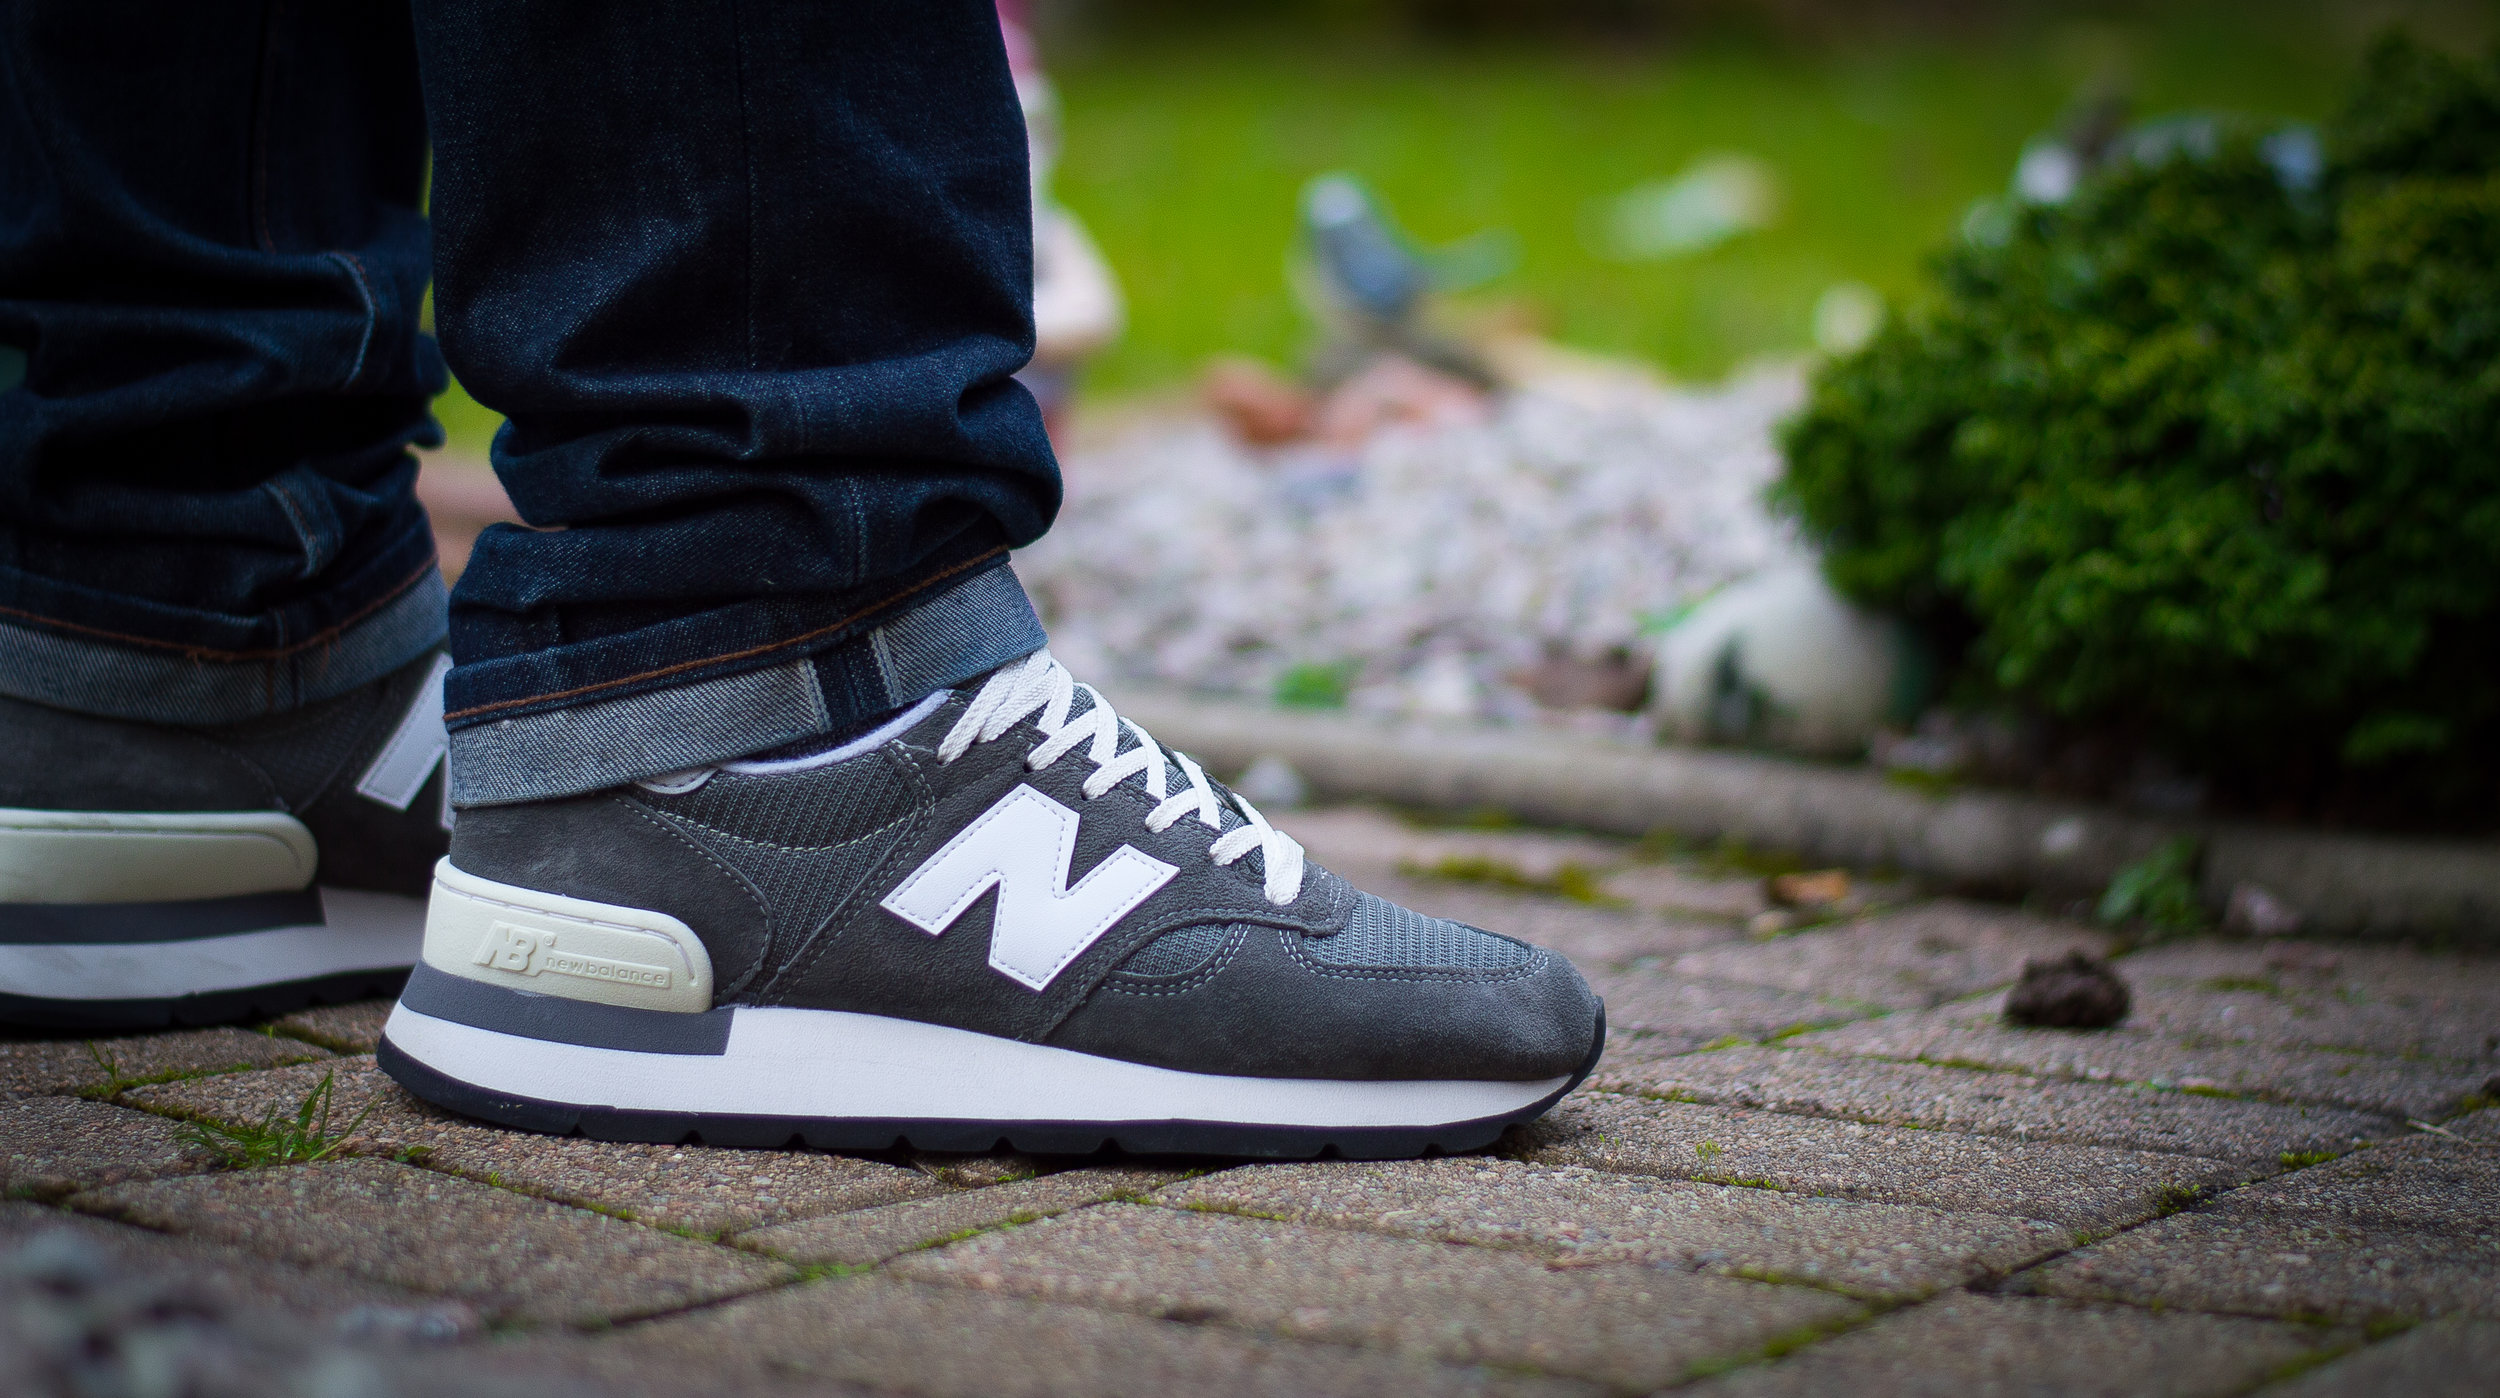 factory price 84d31 a01c9 New Balance 990 Re-issues — Thomas Lindie